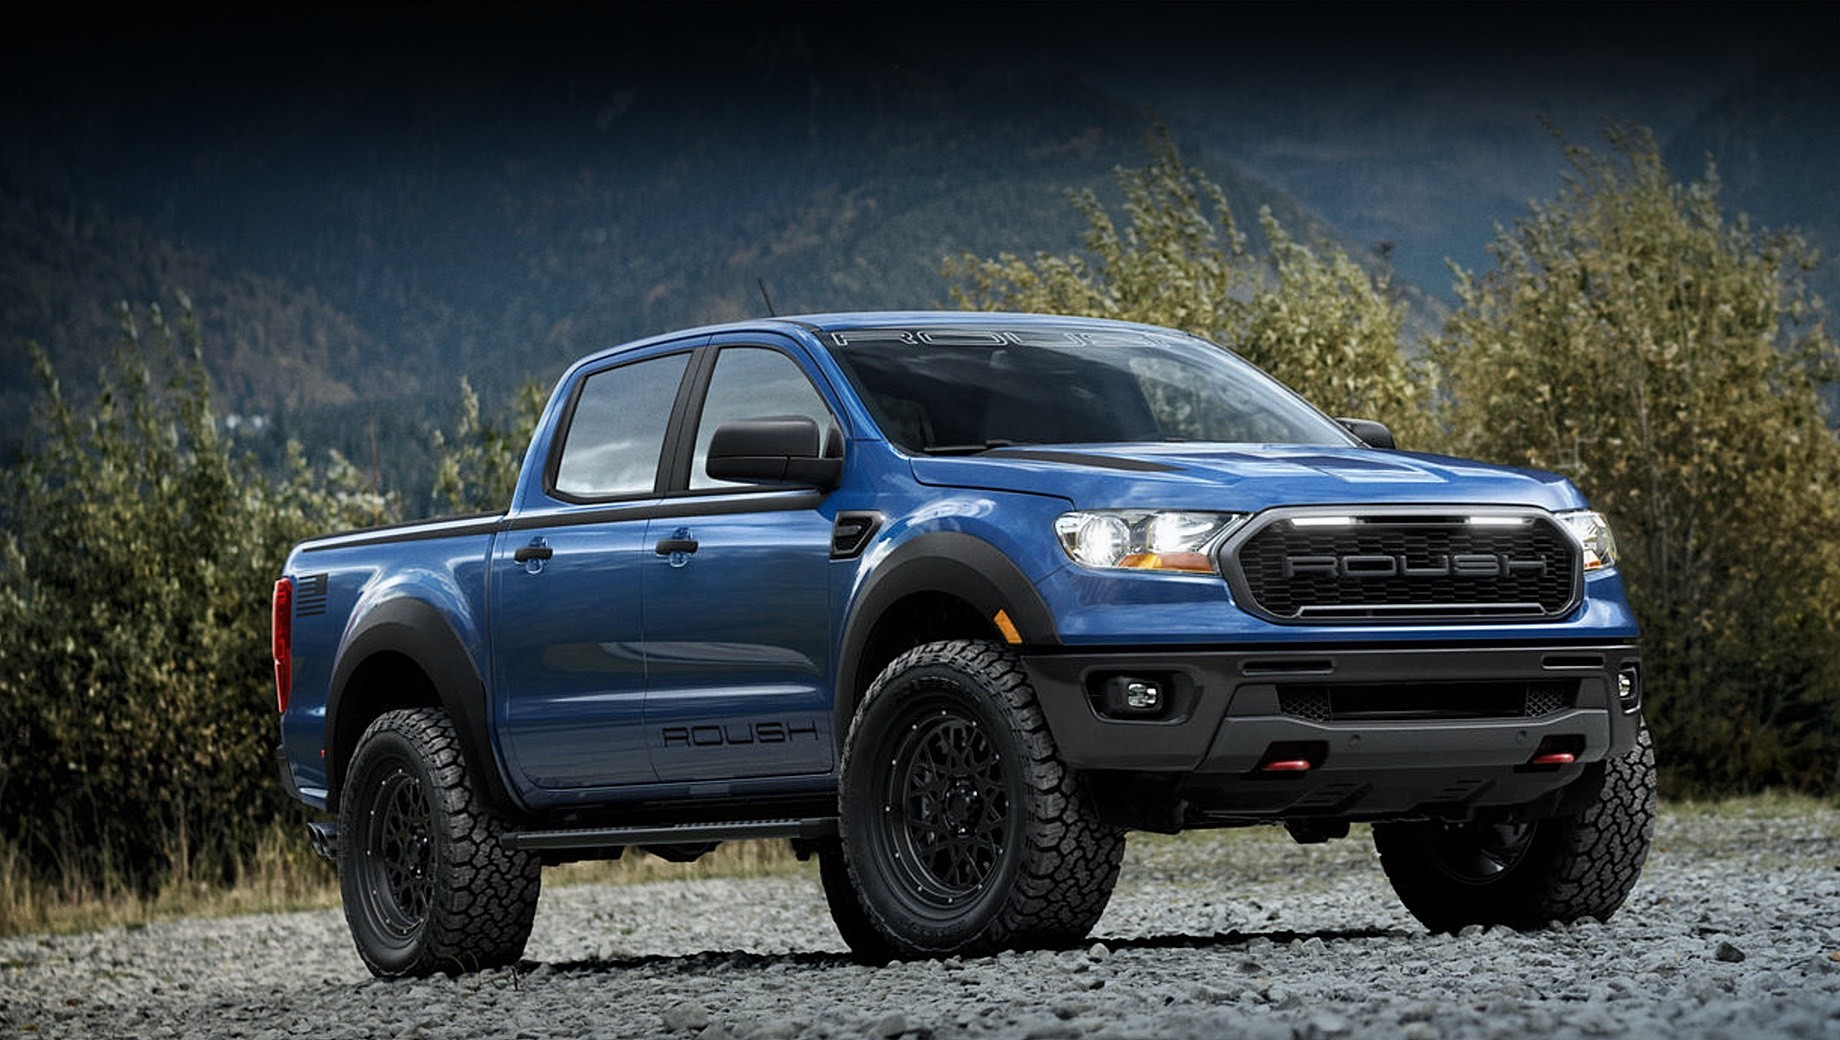 Roush пофантазировал на тему модели Ford Ranger Raptor